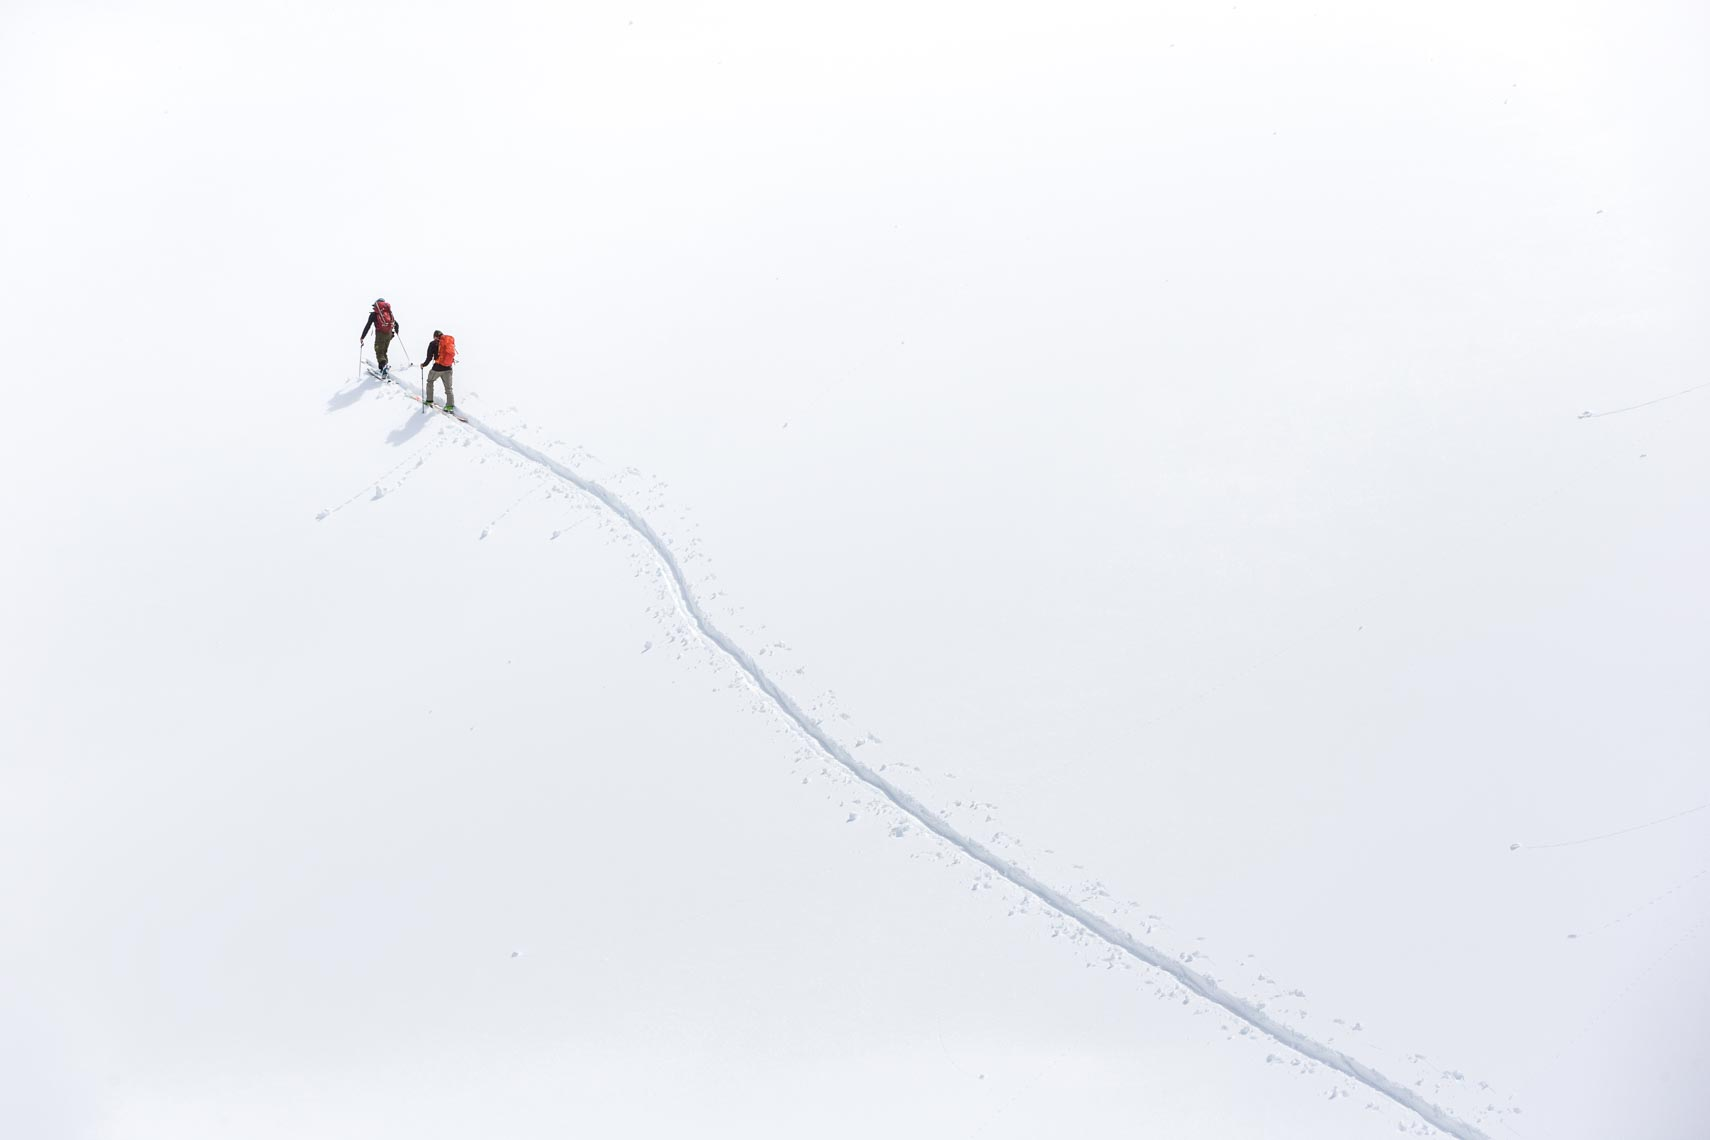 Minimalist ski touring image with white background photographed by Whistler ski photographer